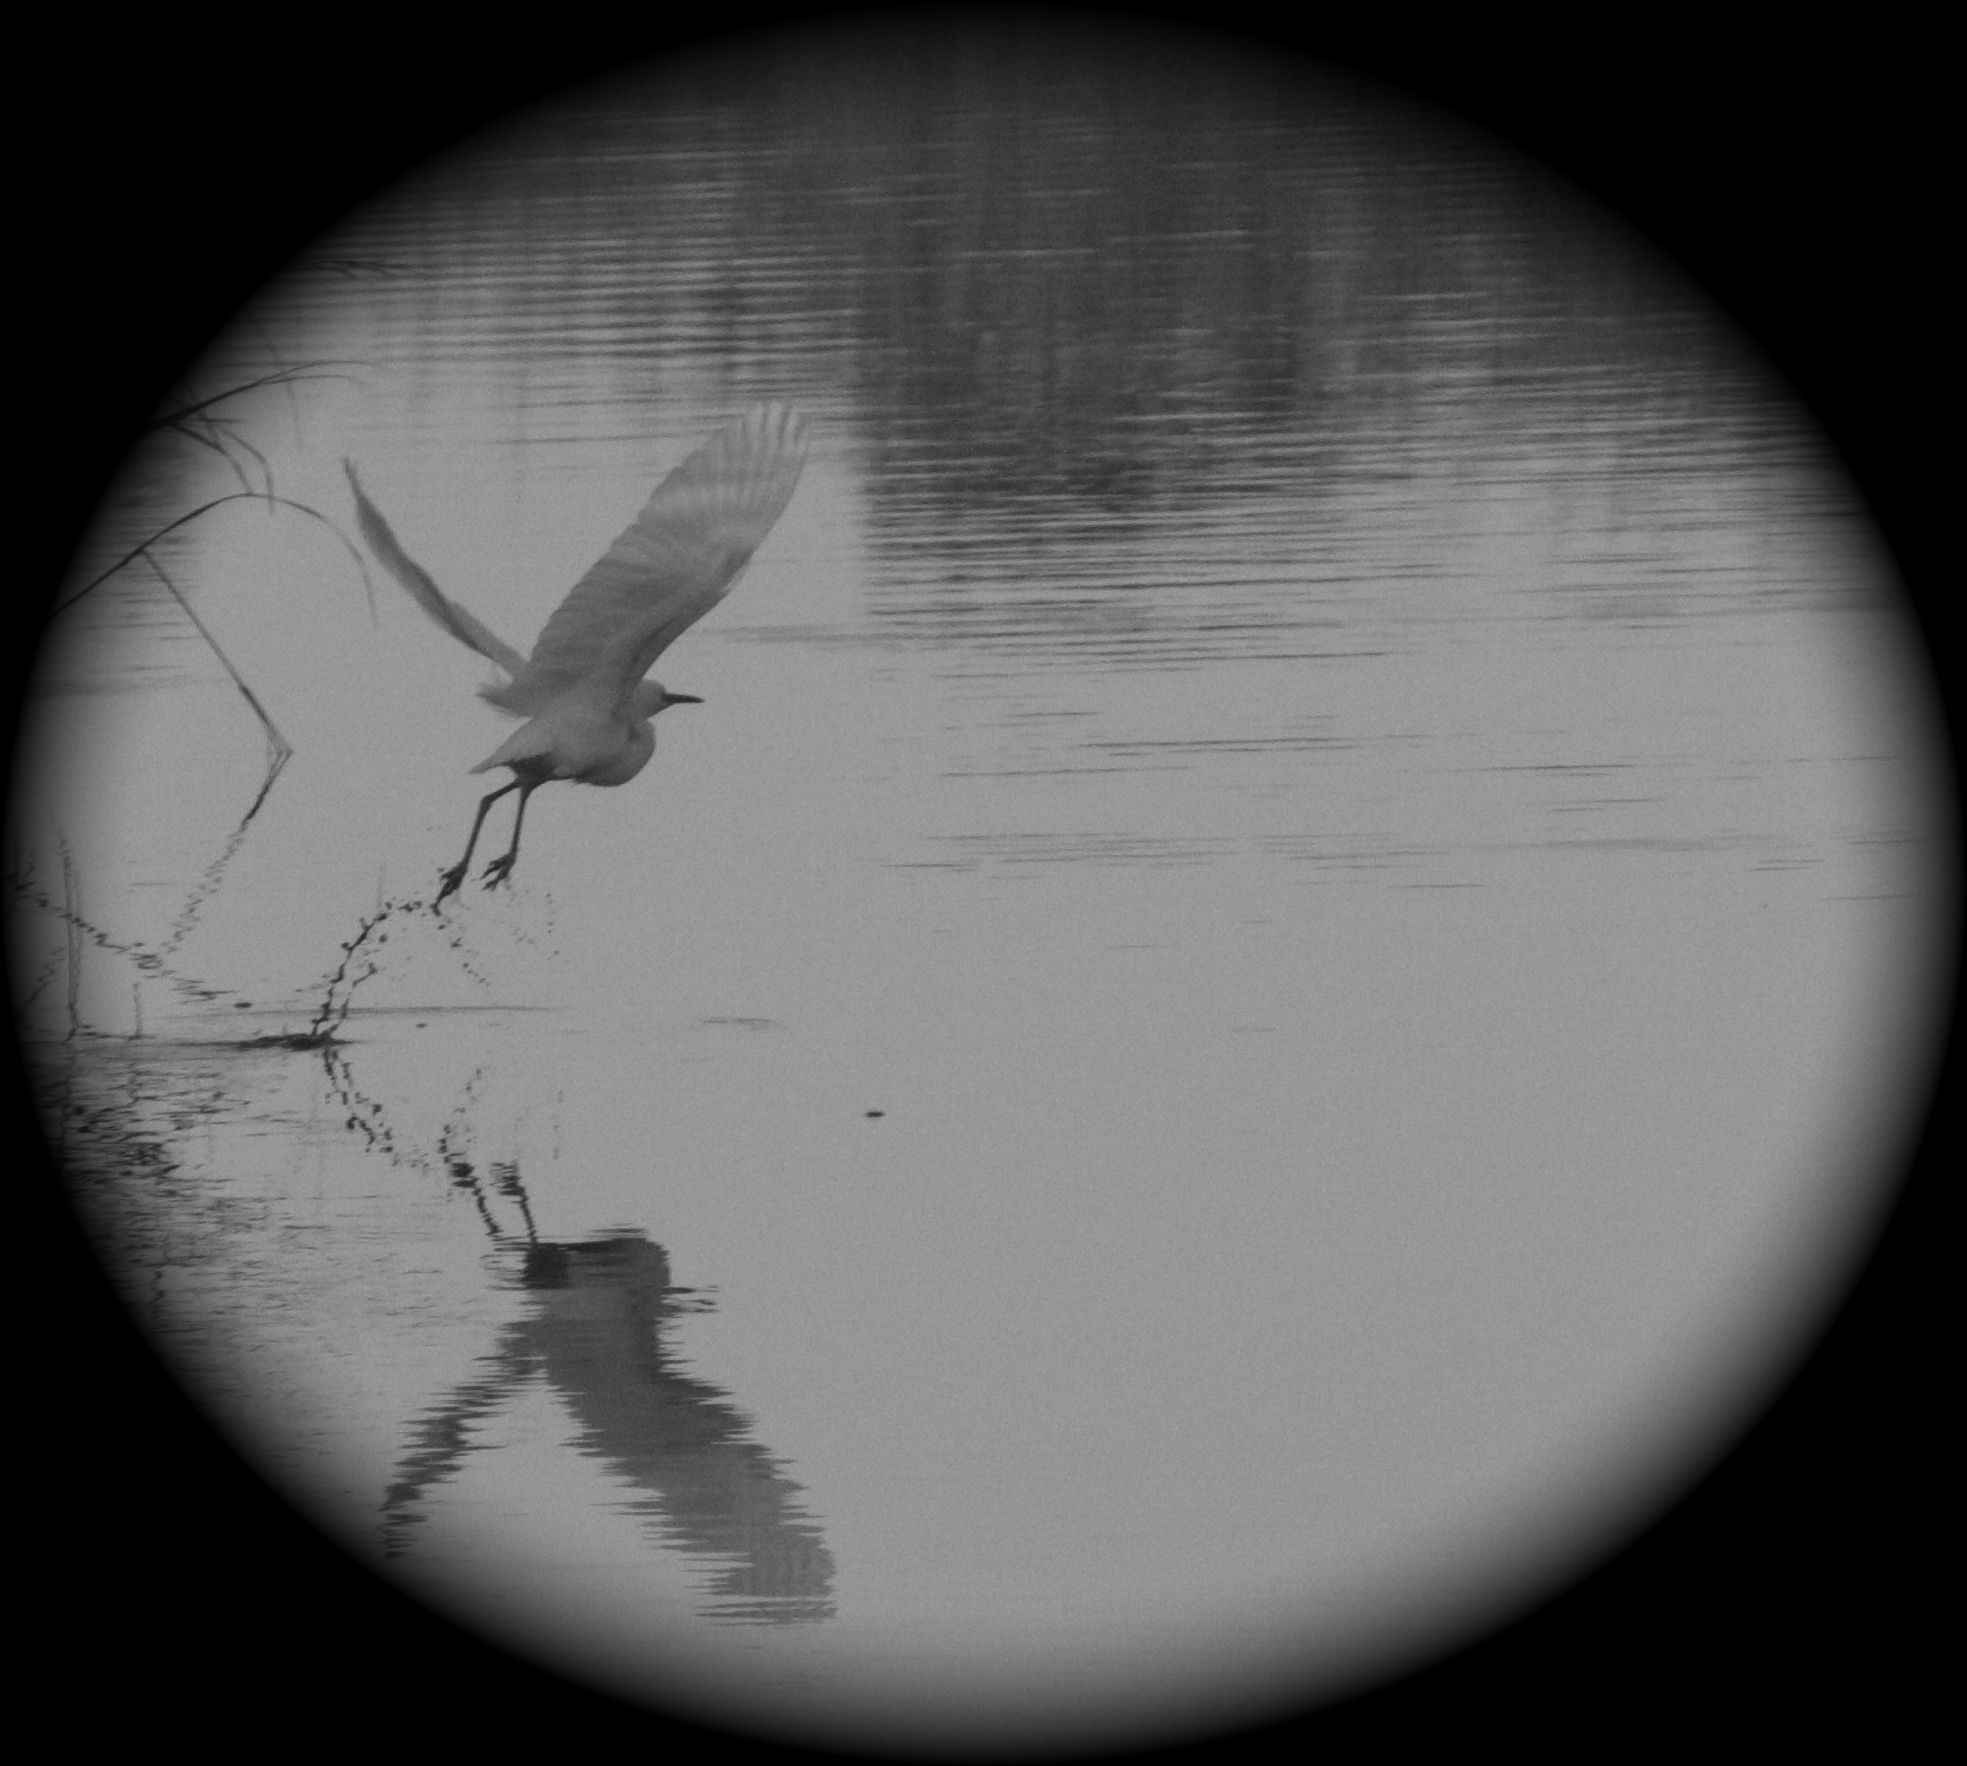 A Bird lifts up out of the marsh unseen.